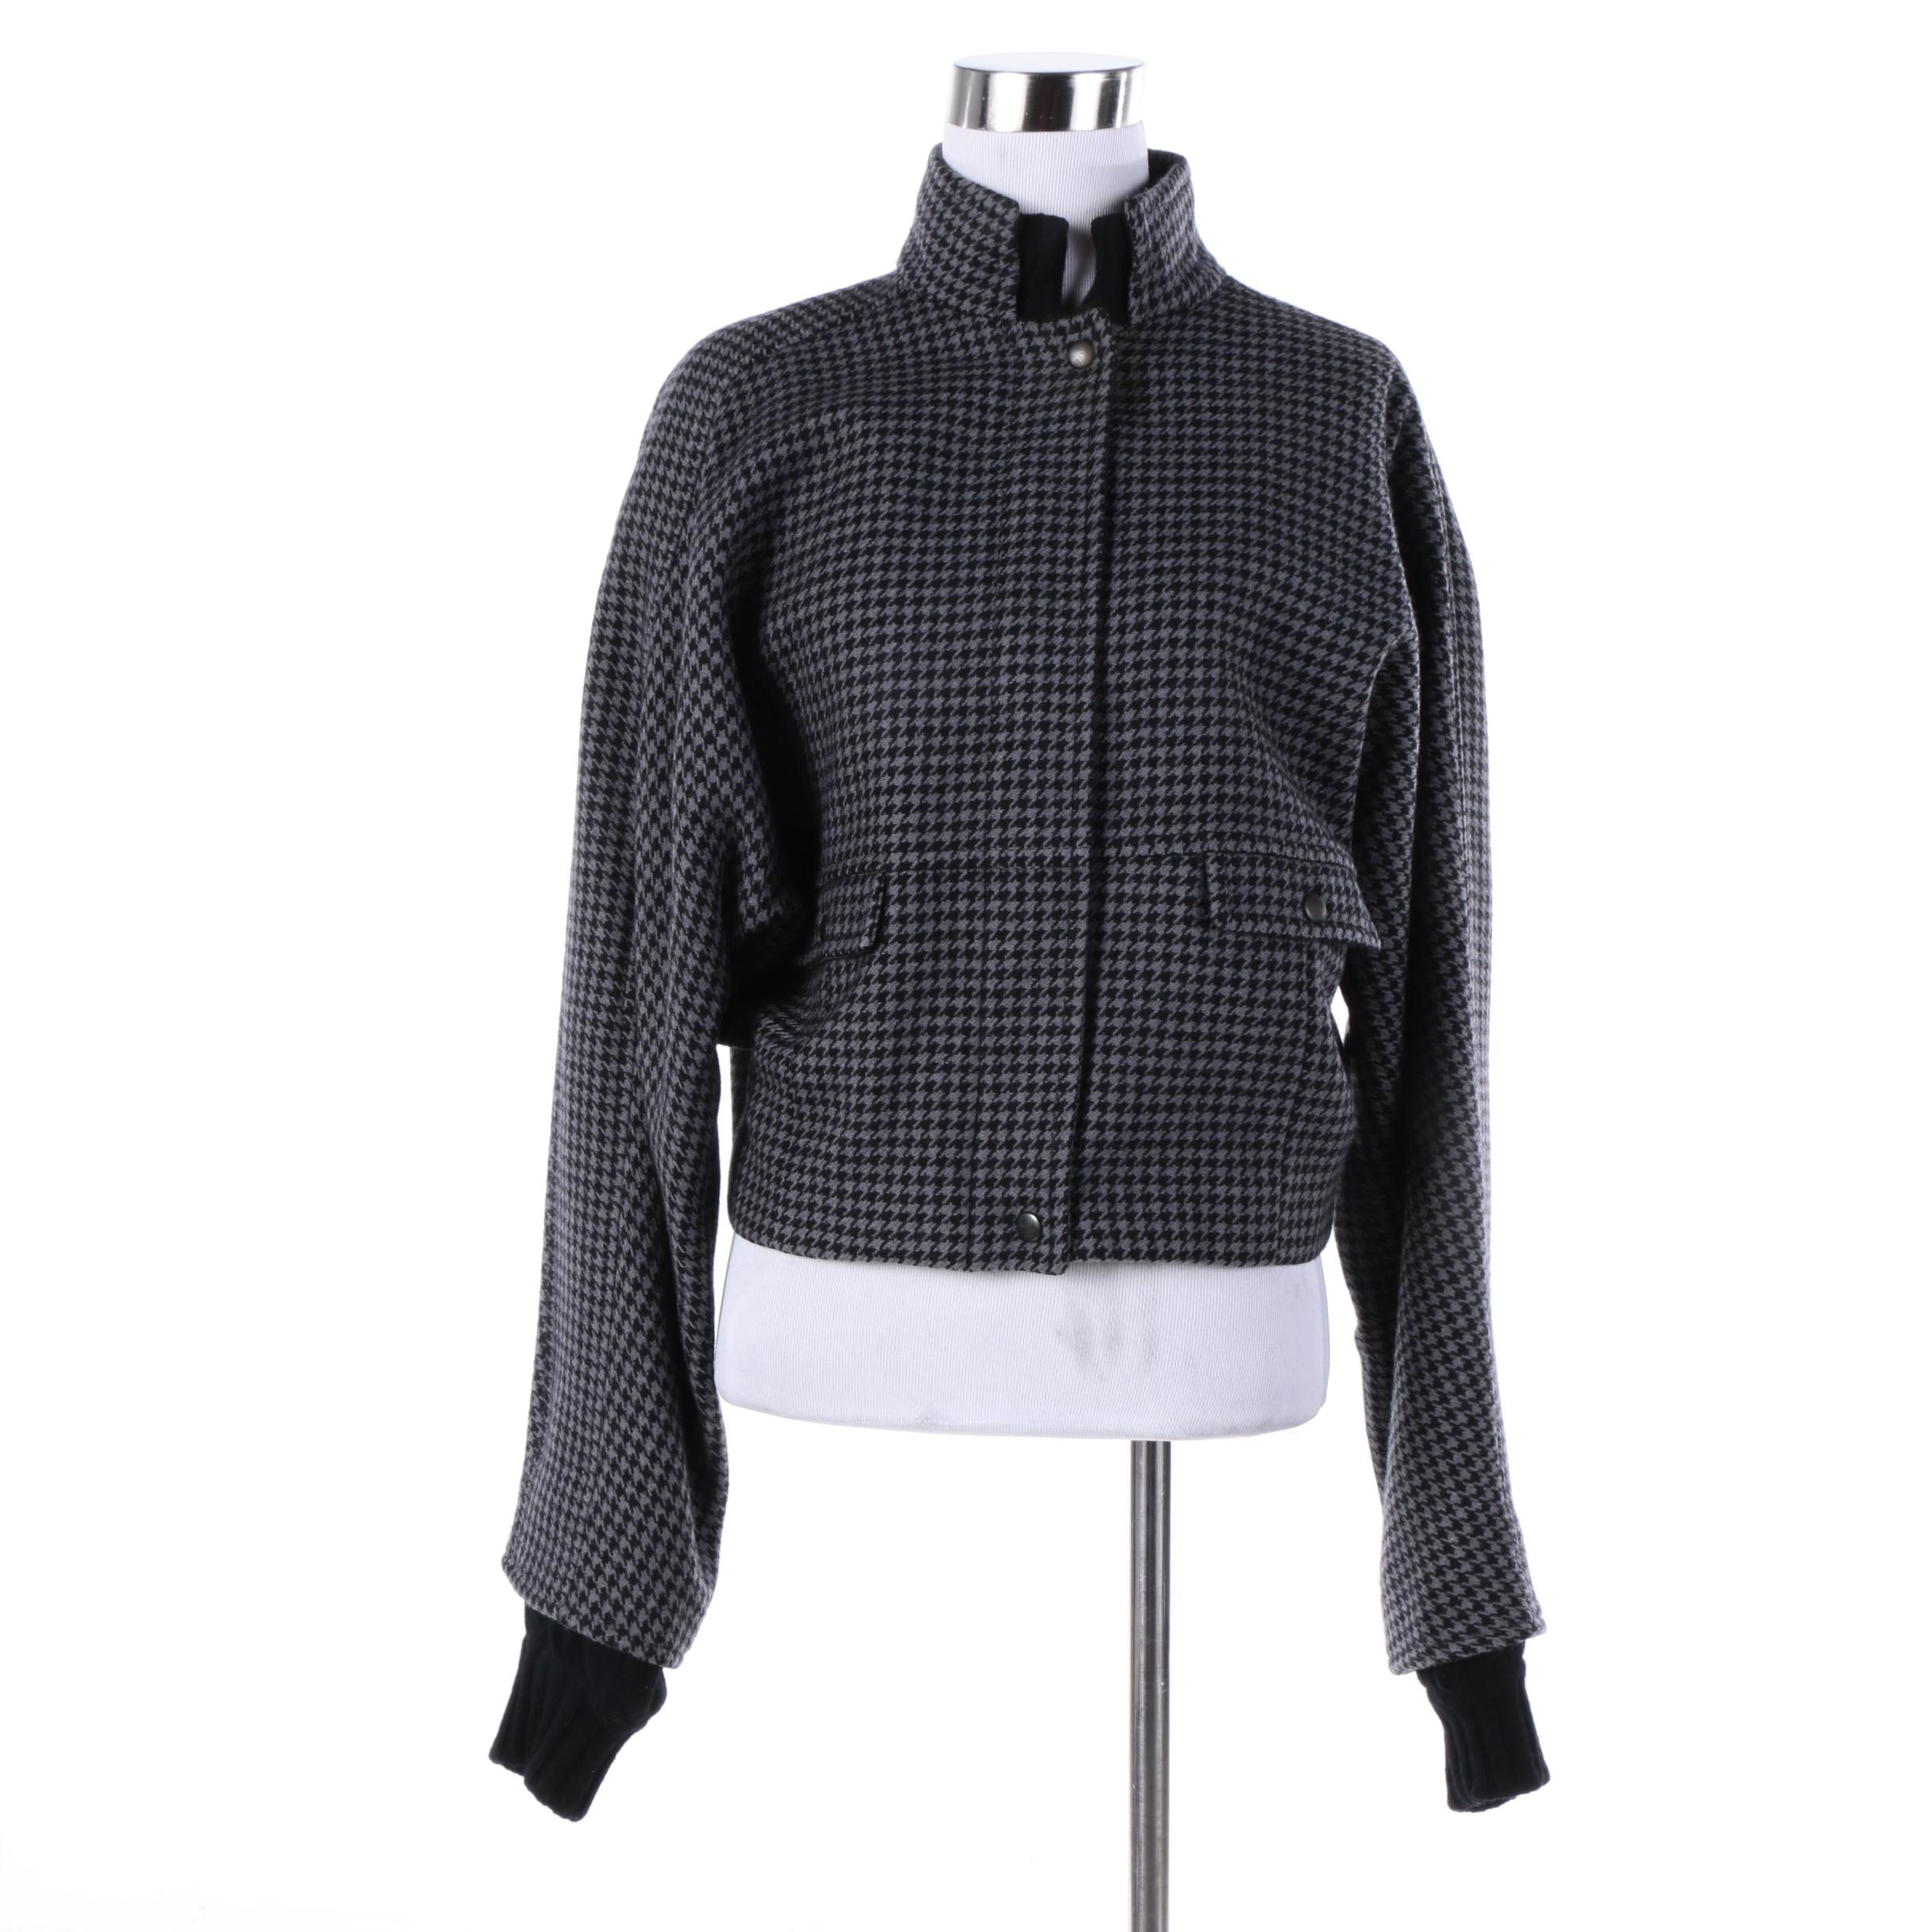 Women's Vintage Salvatore Ferragamo Wool Houndstooth Jacket